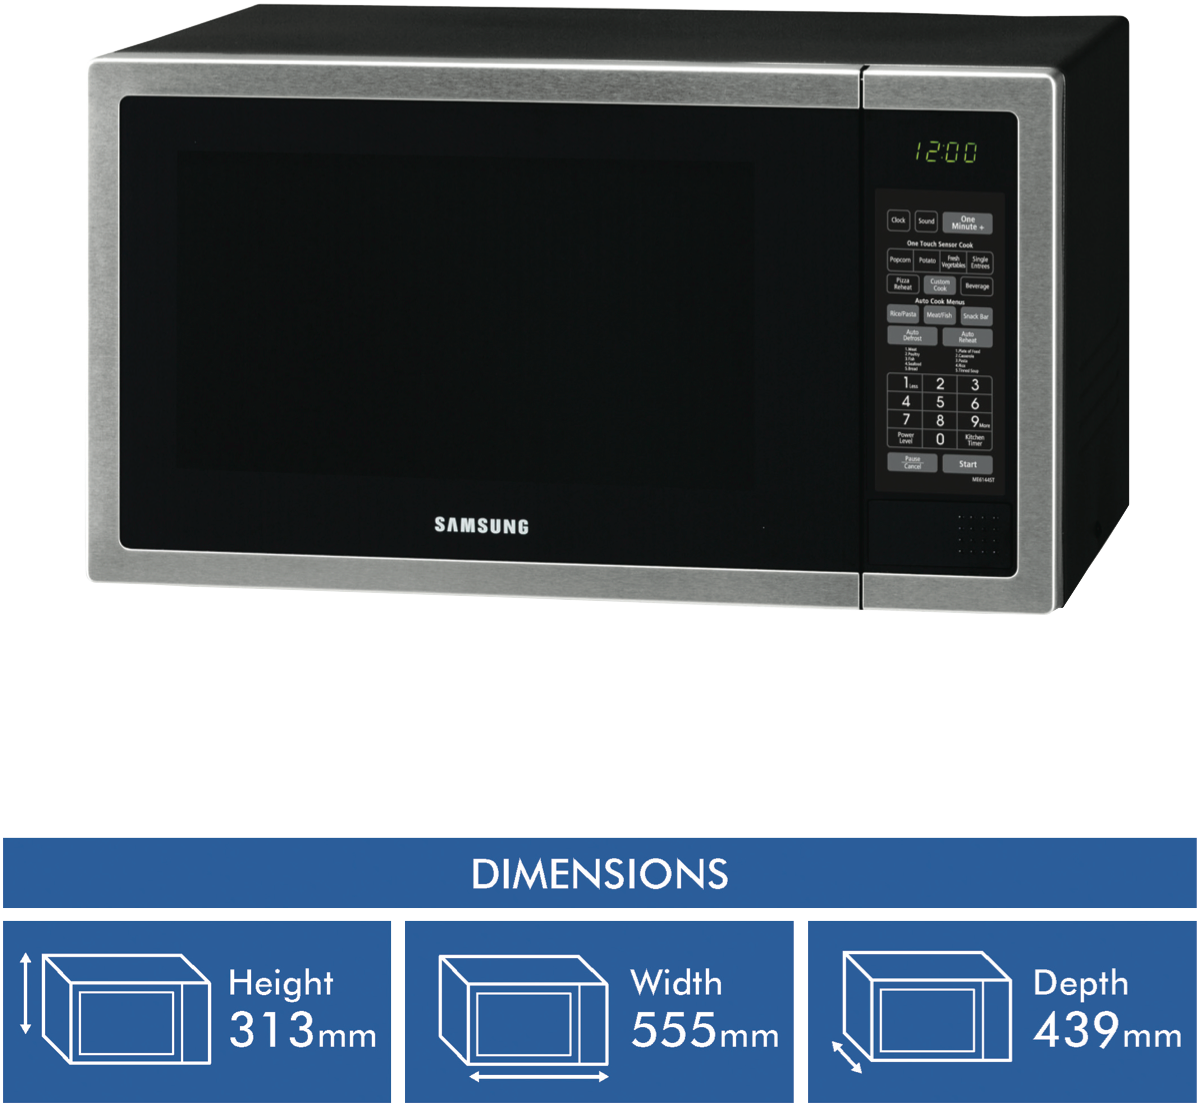 Samsung Me6144st 40l 1000w Stainless Steel Microwave At